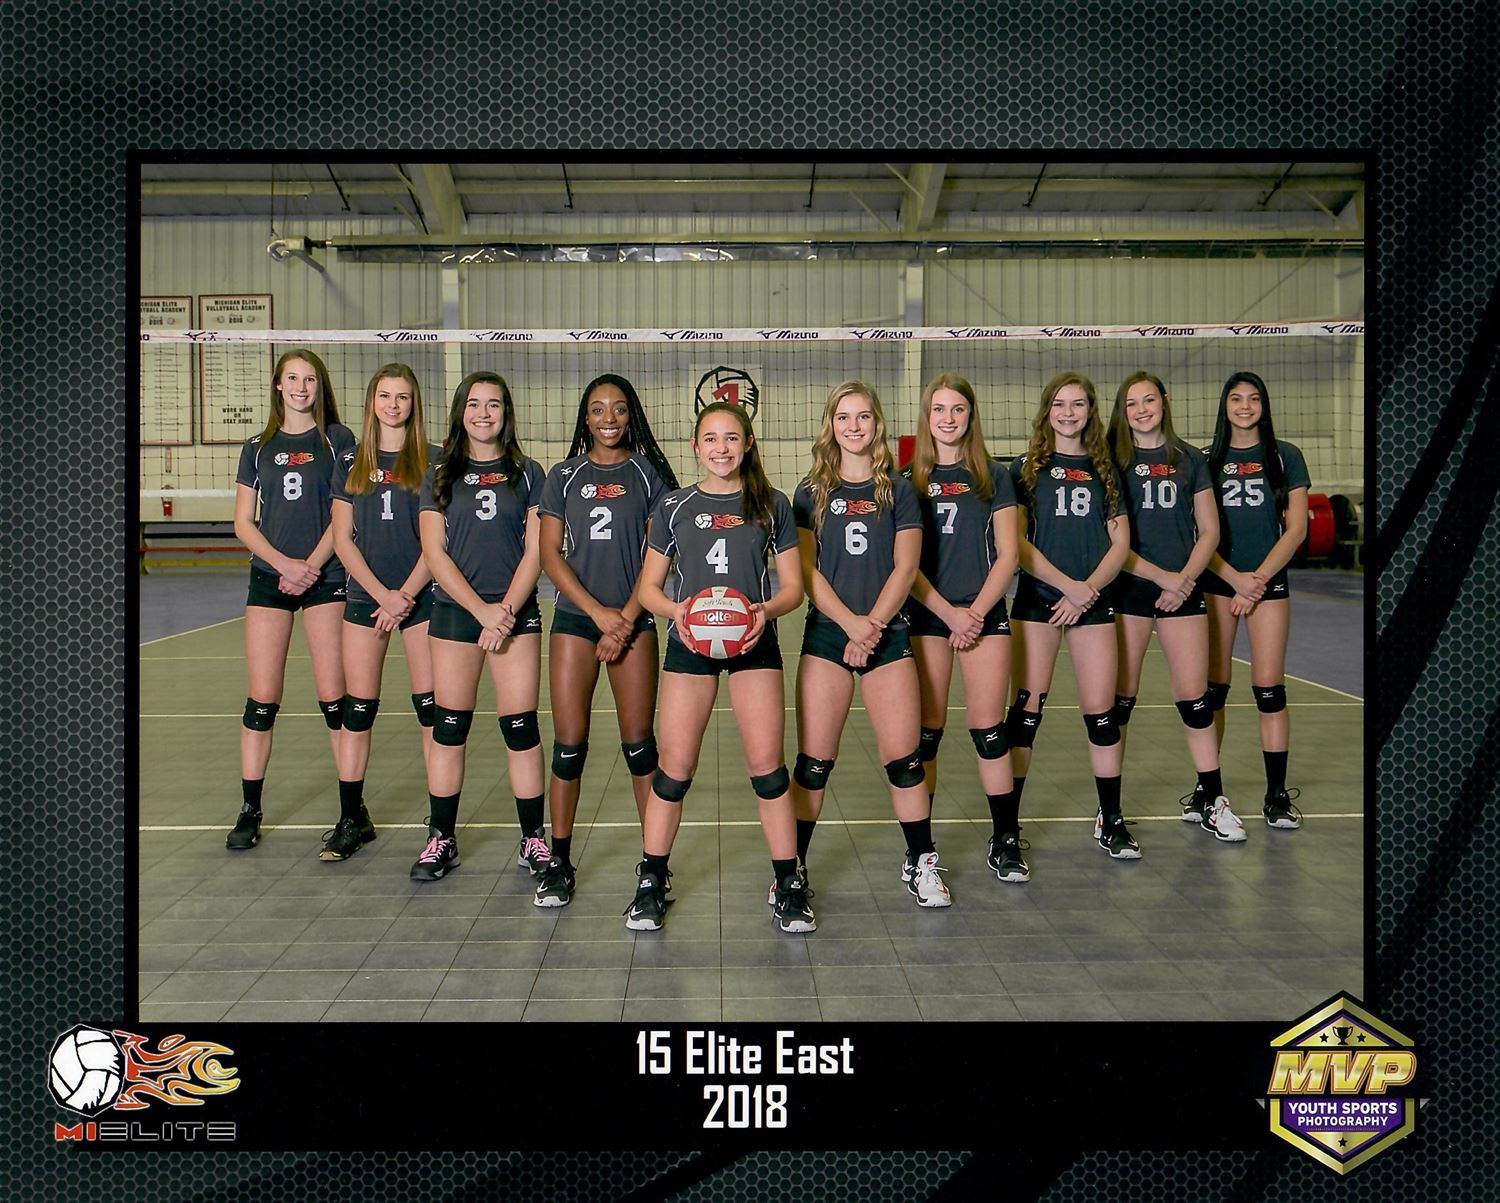 Mielite 15 Elite East Michigan Elite Volleyball Academy Mevba Warren Michigan Volleyball Hudl